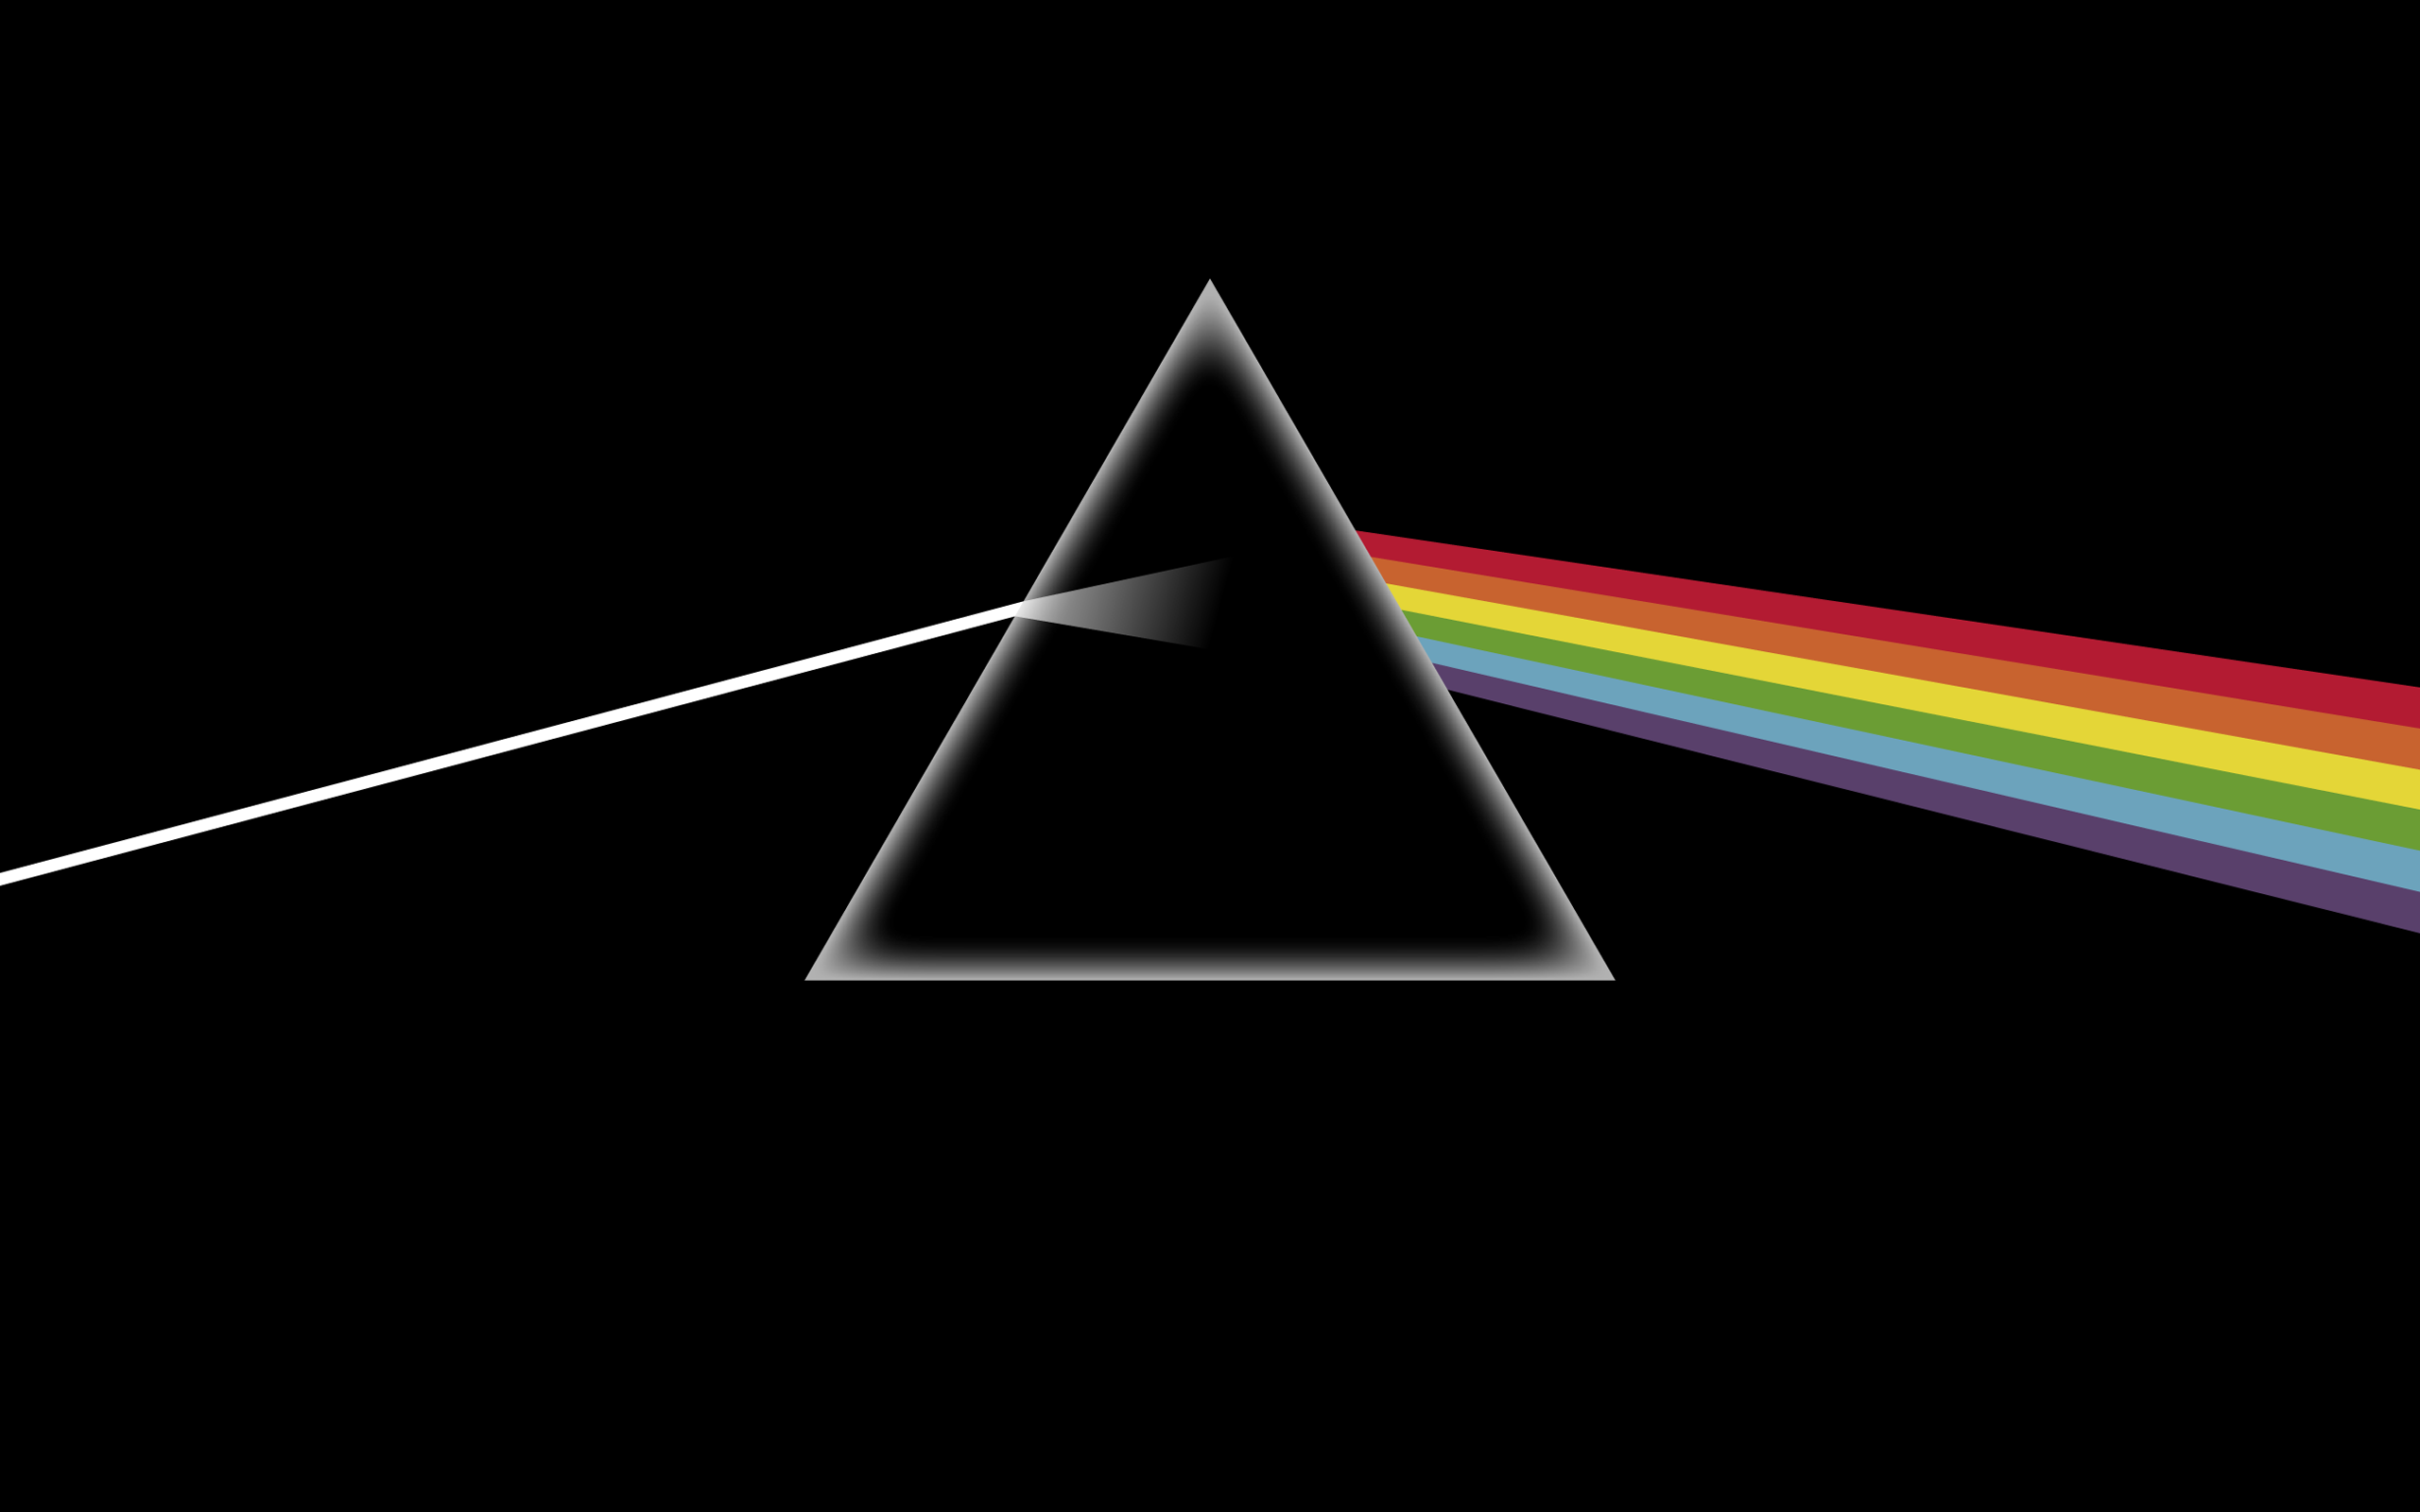 Iphone Wallpaper Dark Side Of The Moon